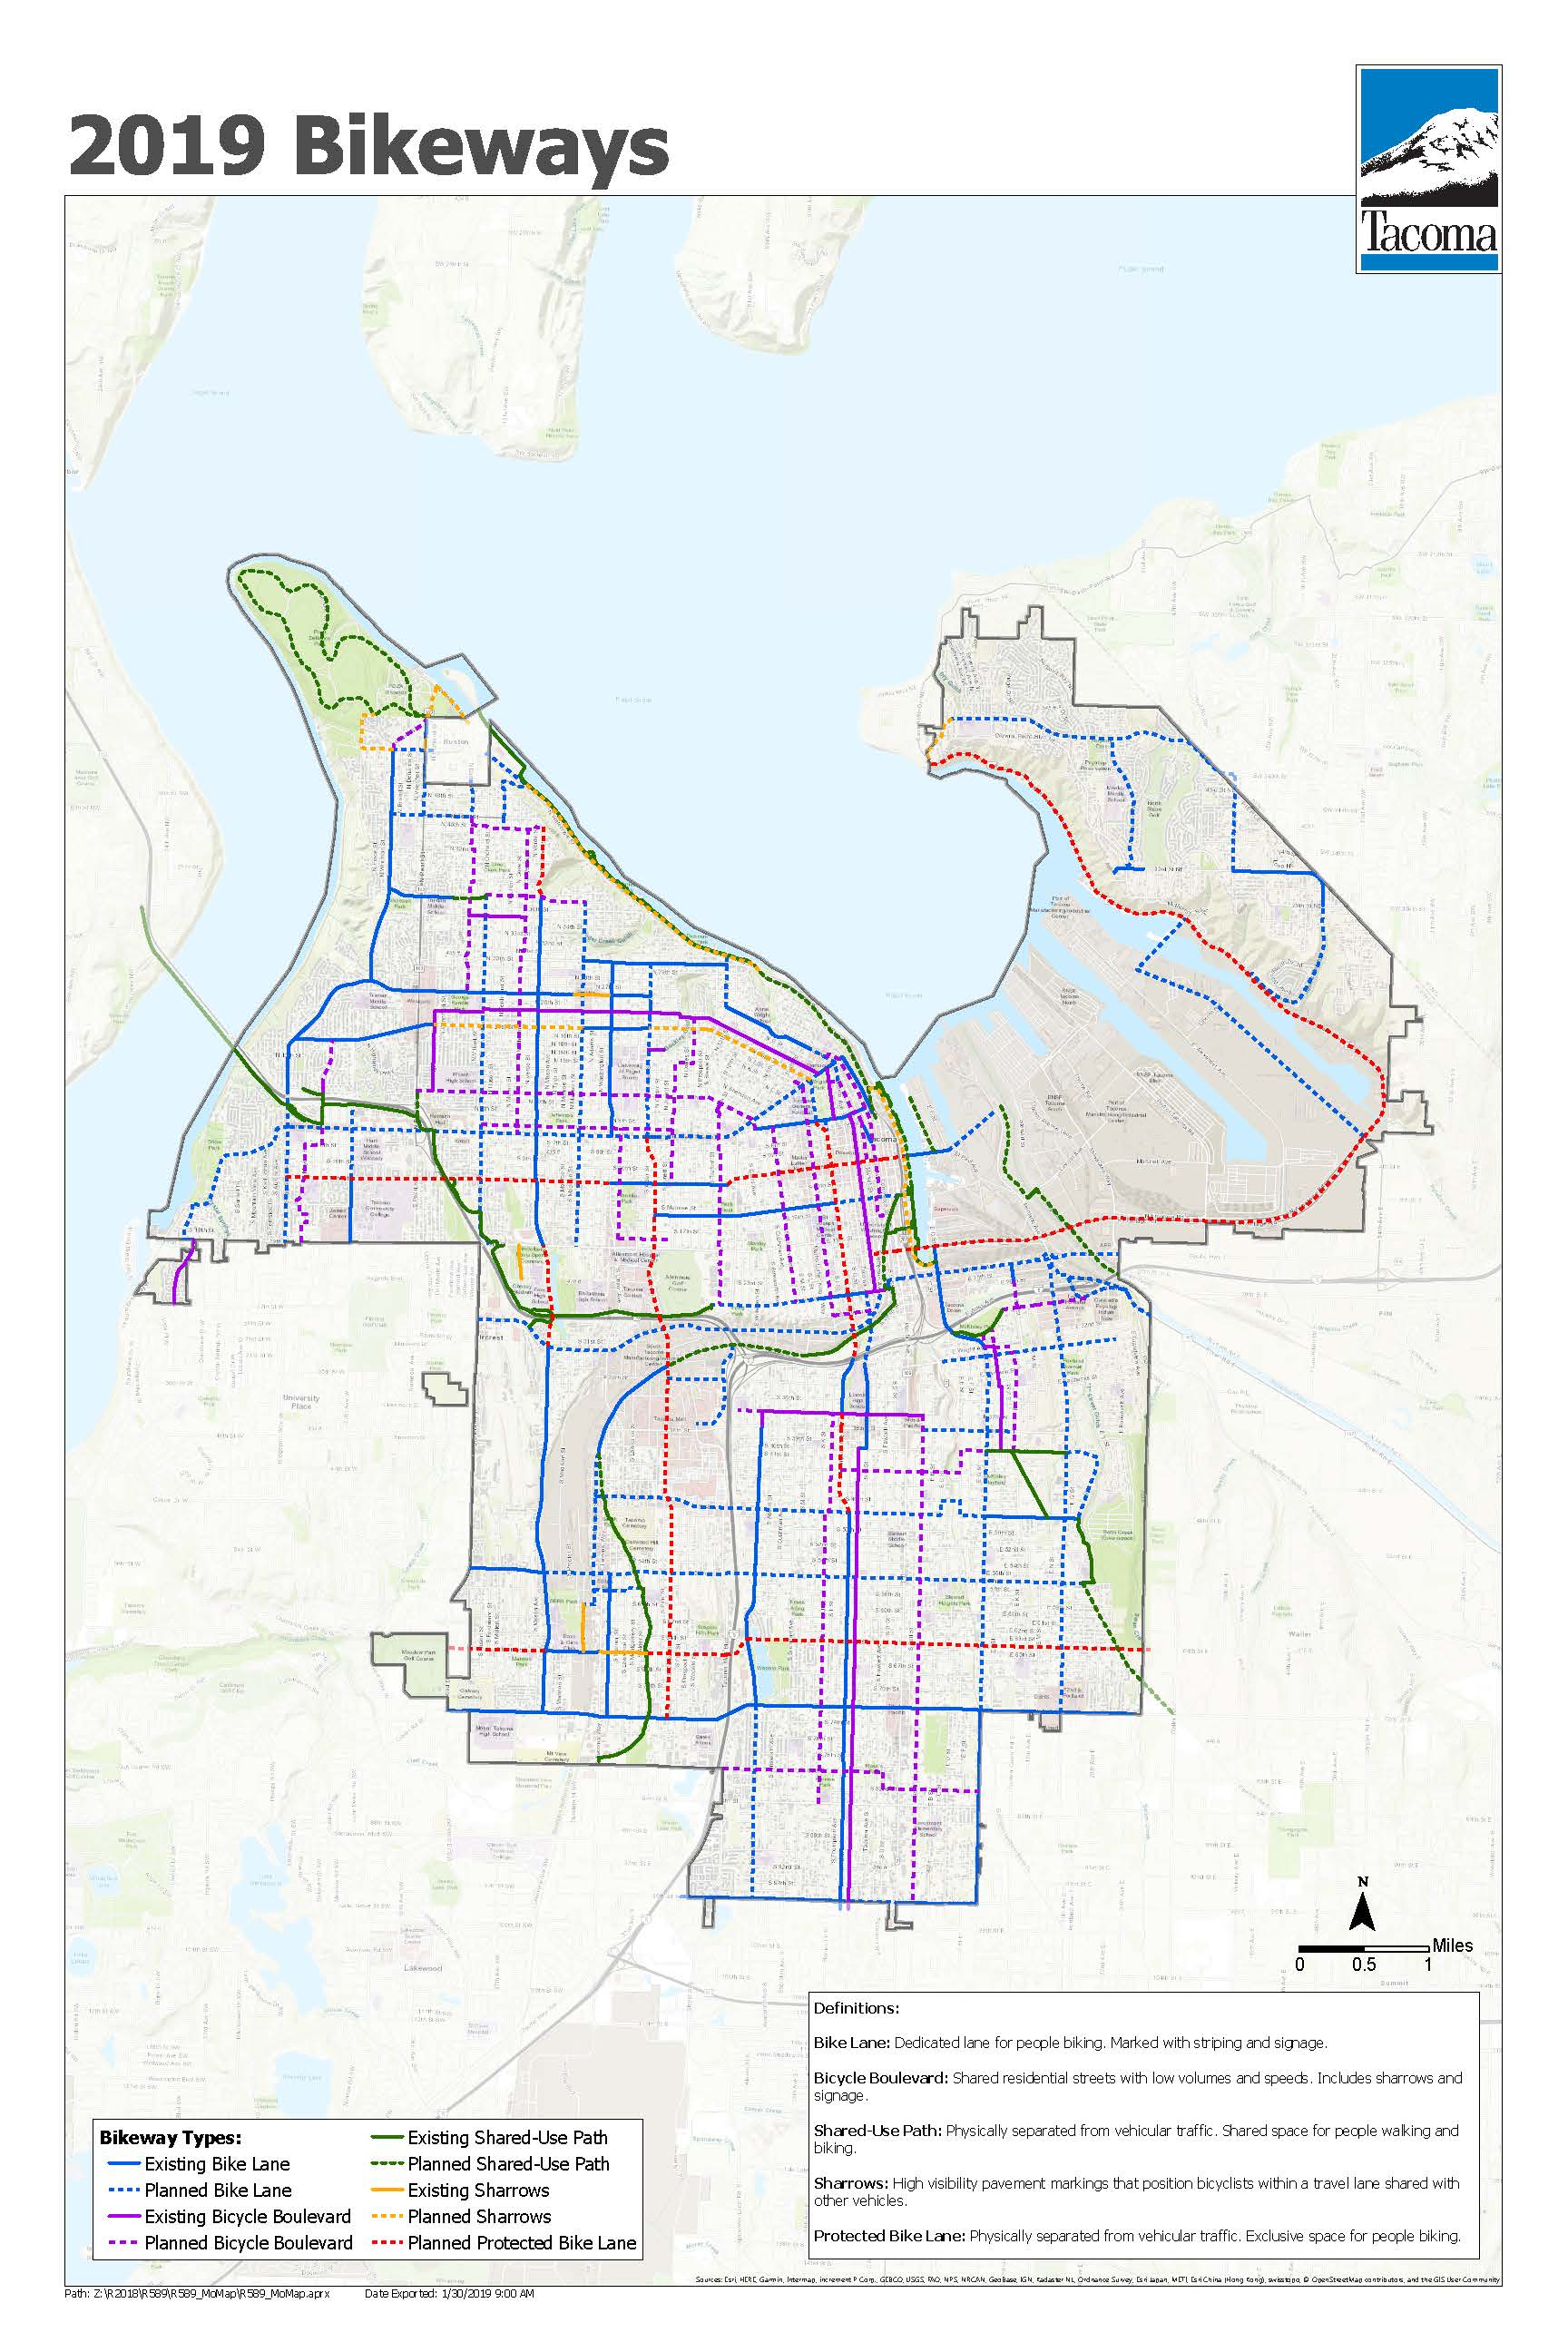 2019 Bikeways Map